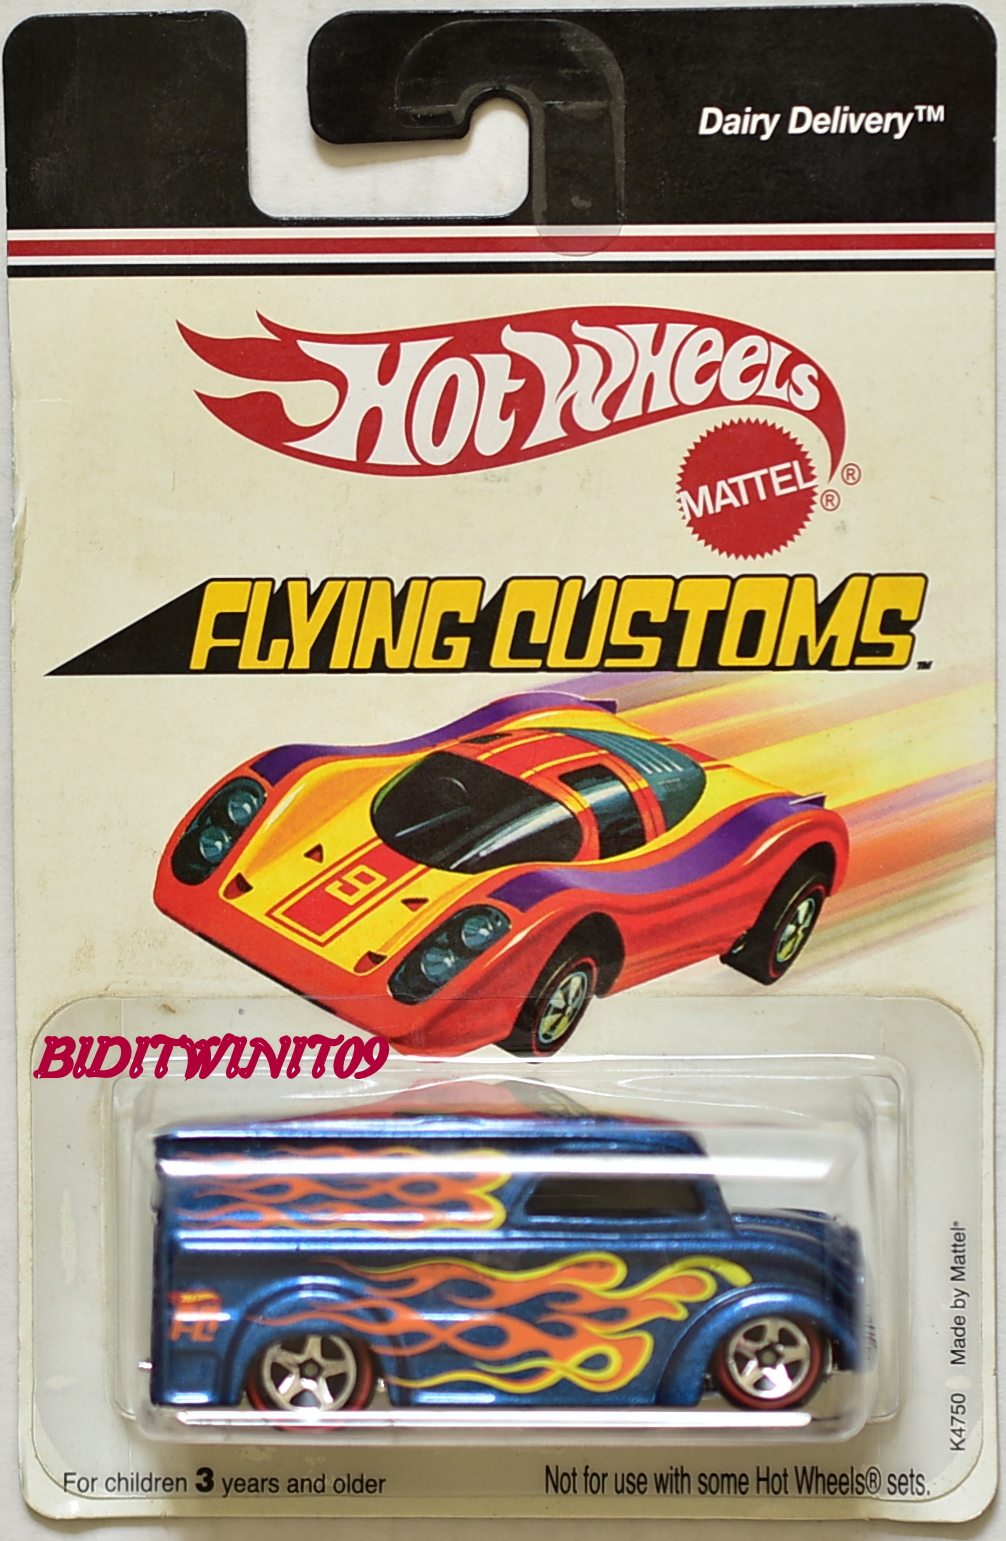 HOT WHEELS PLYING CUSTOMS DAIRY DELIVERY K4750 MADE BY MATTEL BAD CARD E+